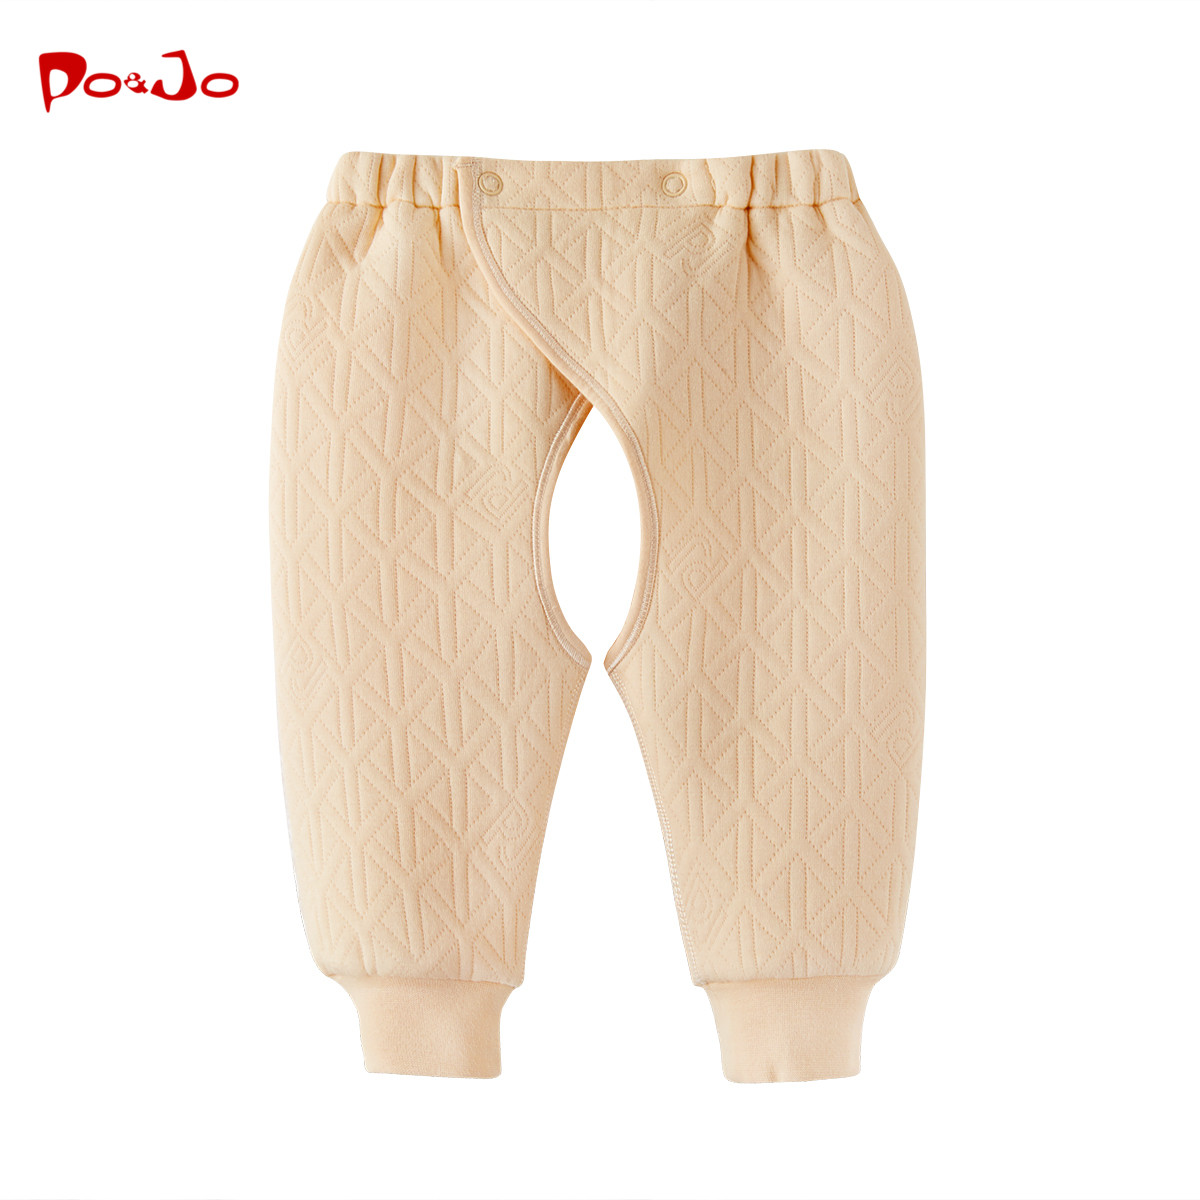 Joe ruo leather 2016 fall and winter clothes new 0 baby clothes 3 newborn baby crotch pants to keep warm in winter 6 Months